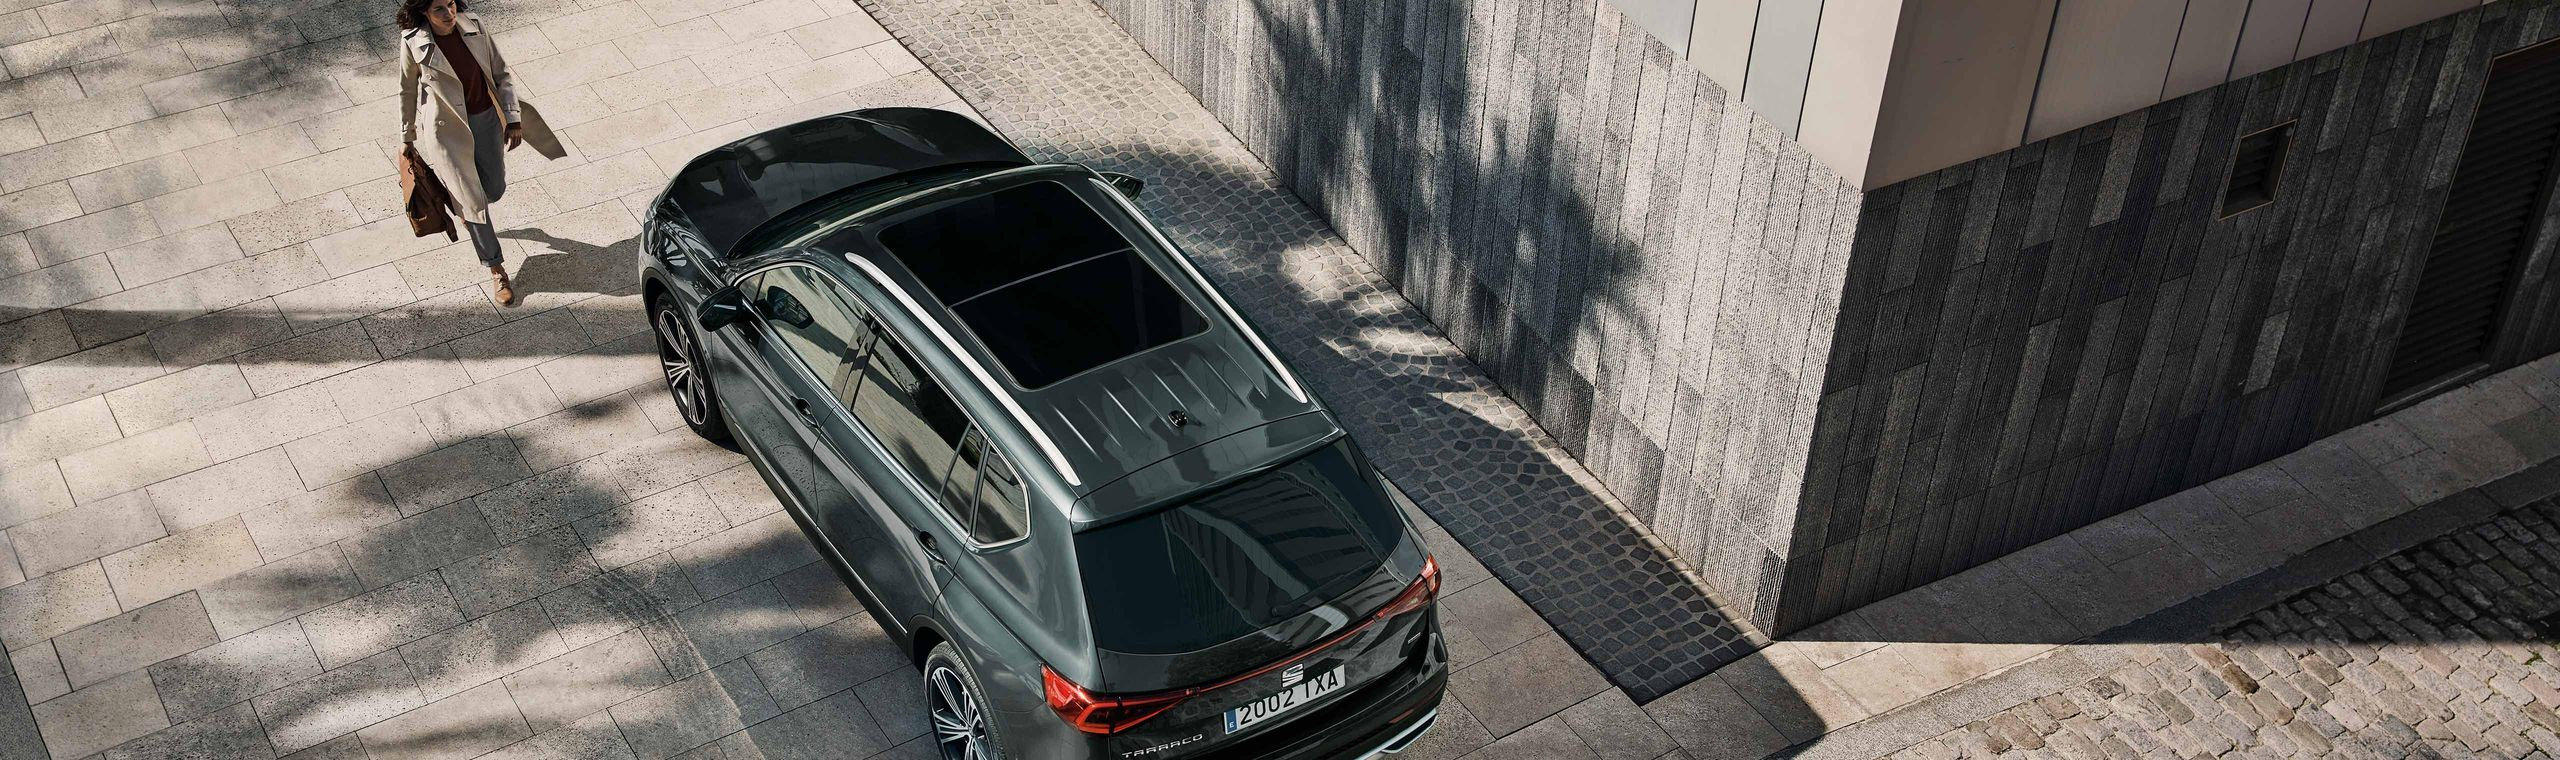 new-seat-tarraco-7-seater-suv-exterior-view-of-car-with-woman.jpg